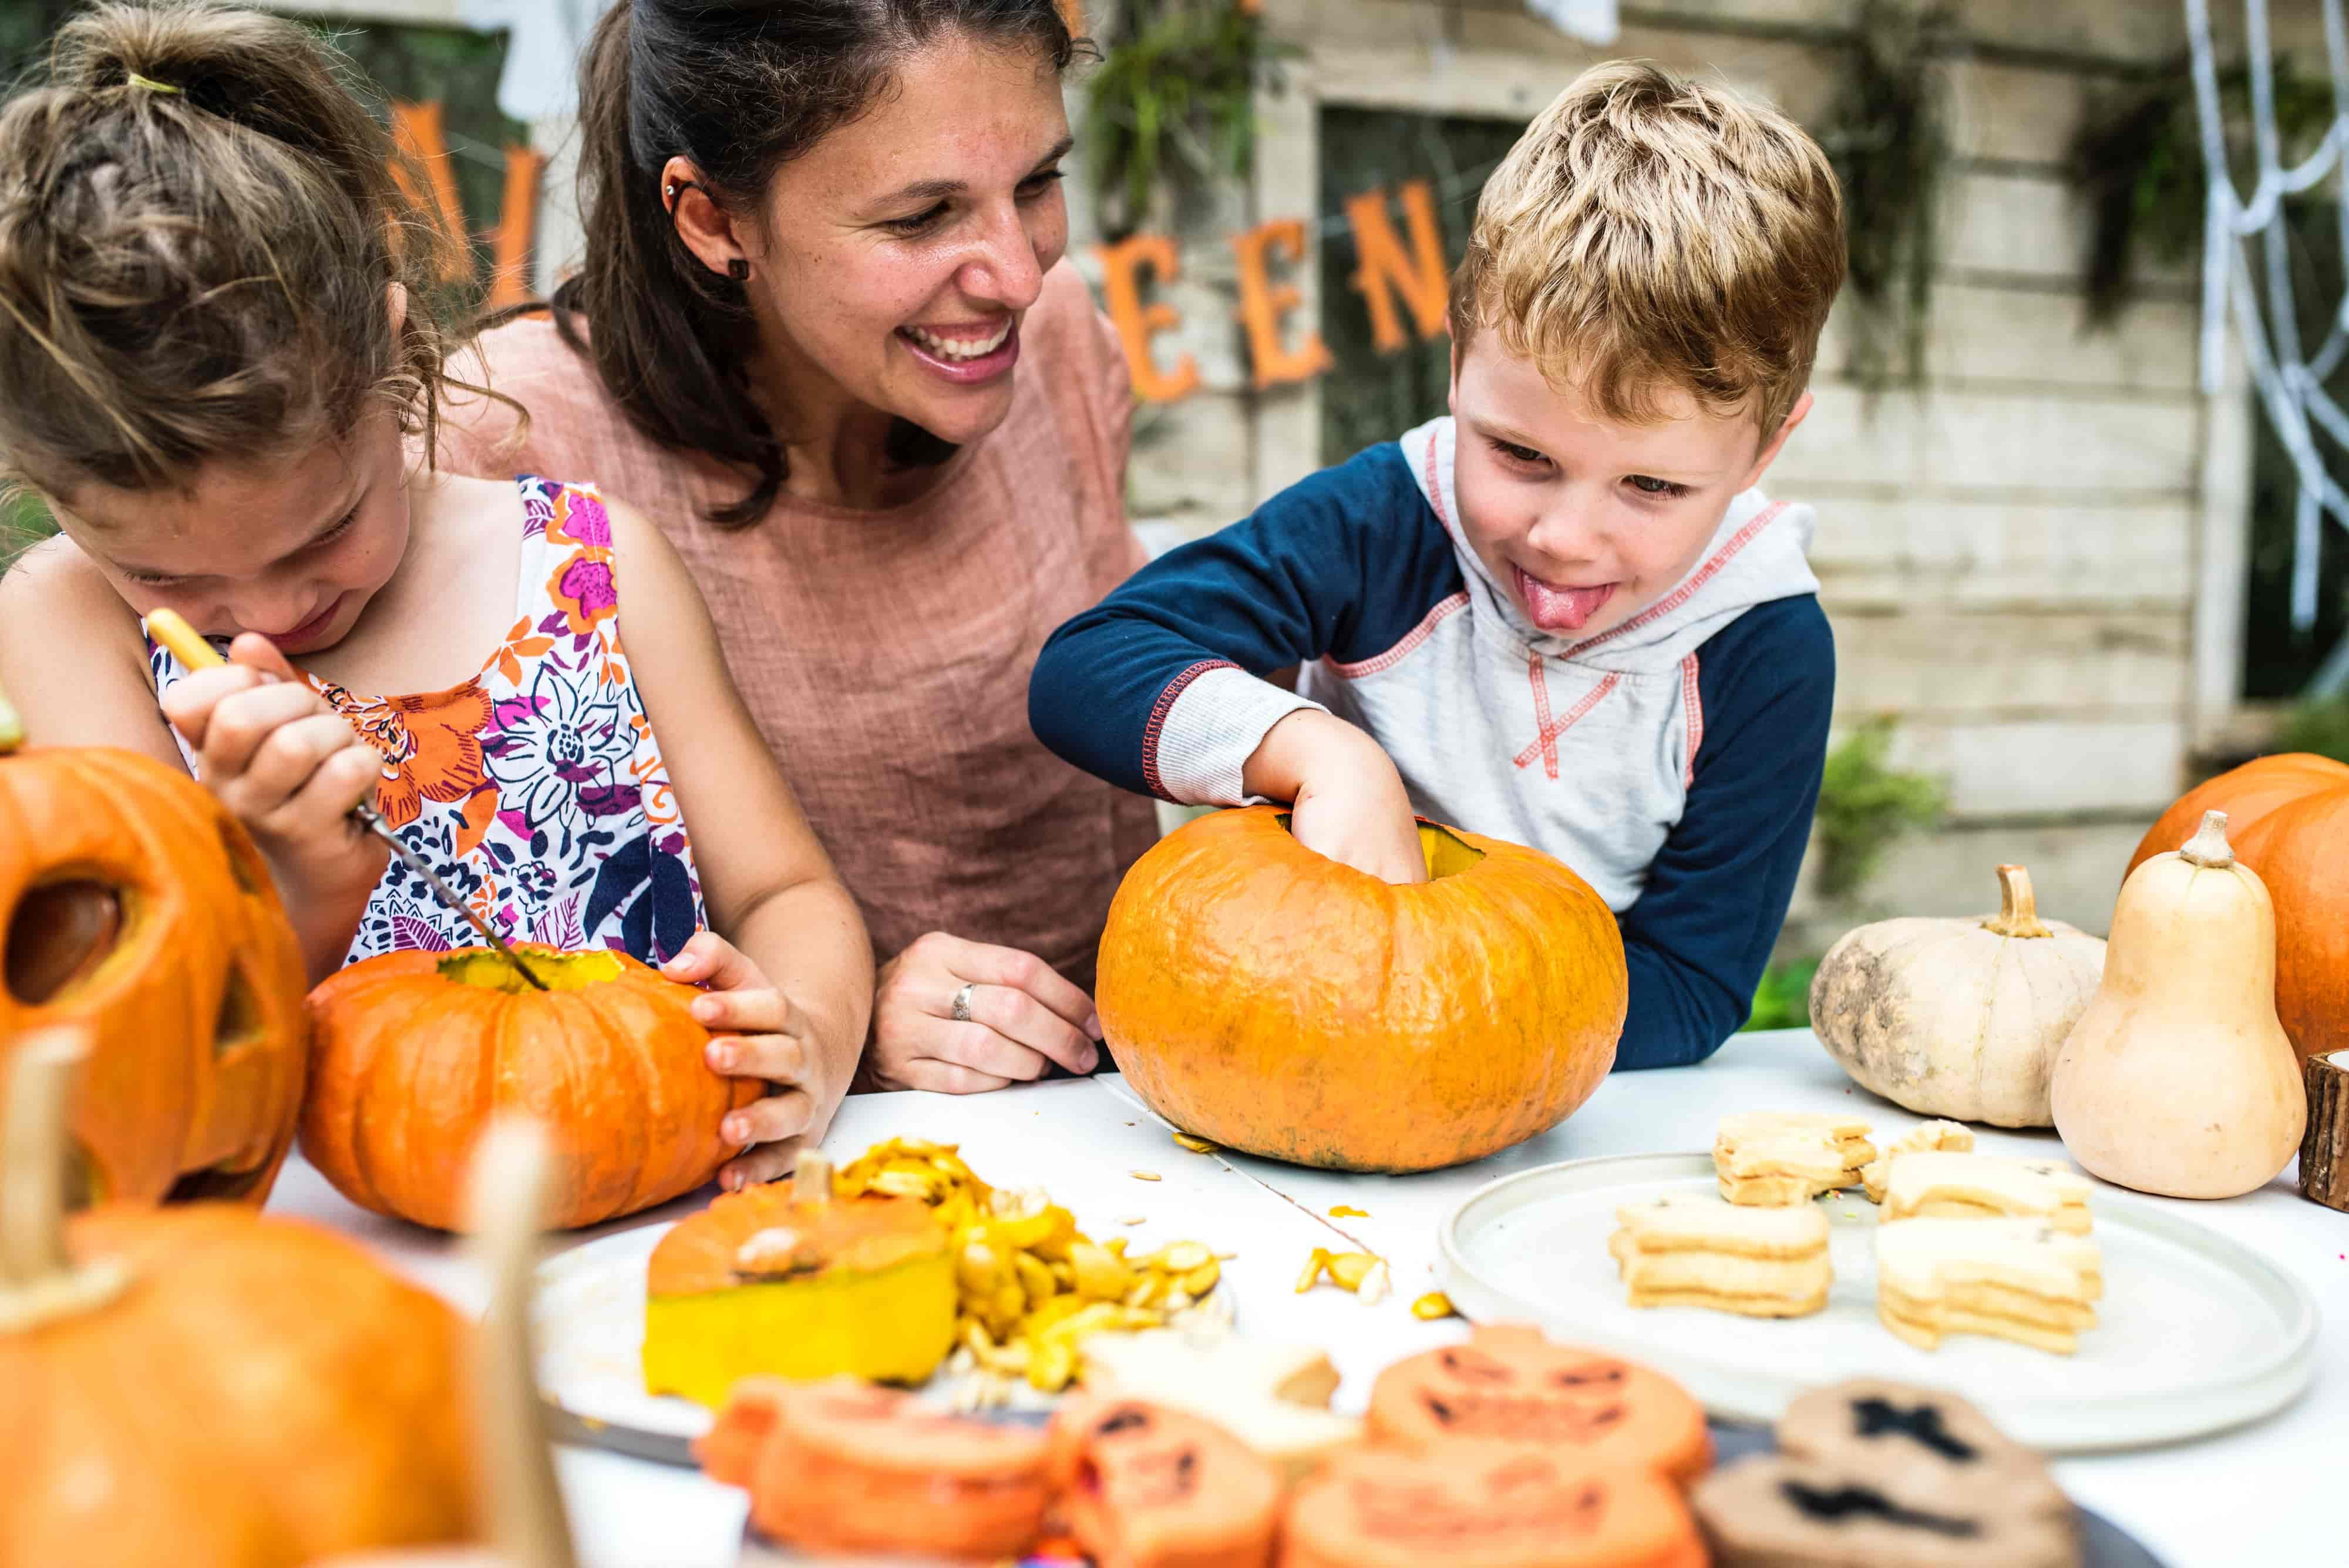 Throw an Awesome Fall Party-Outside!